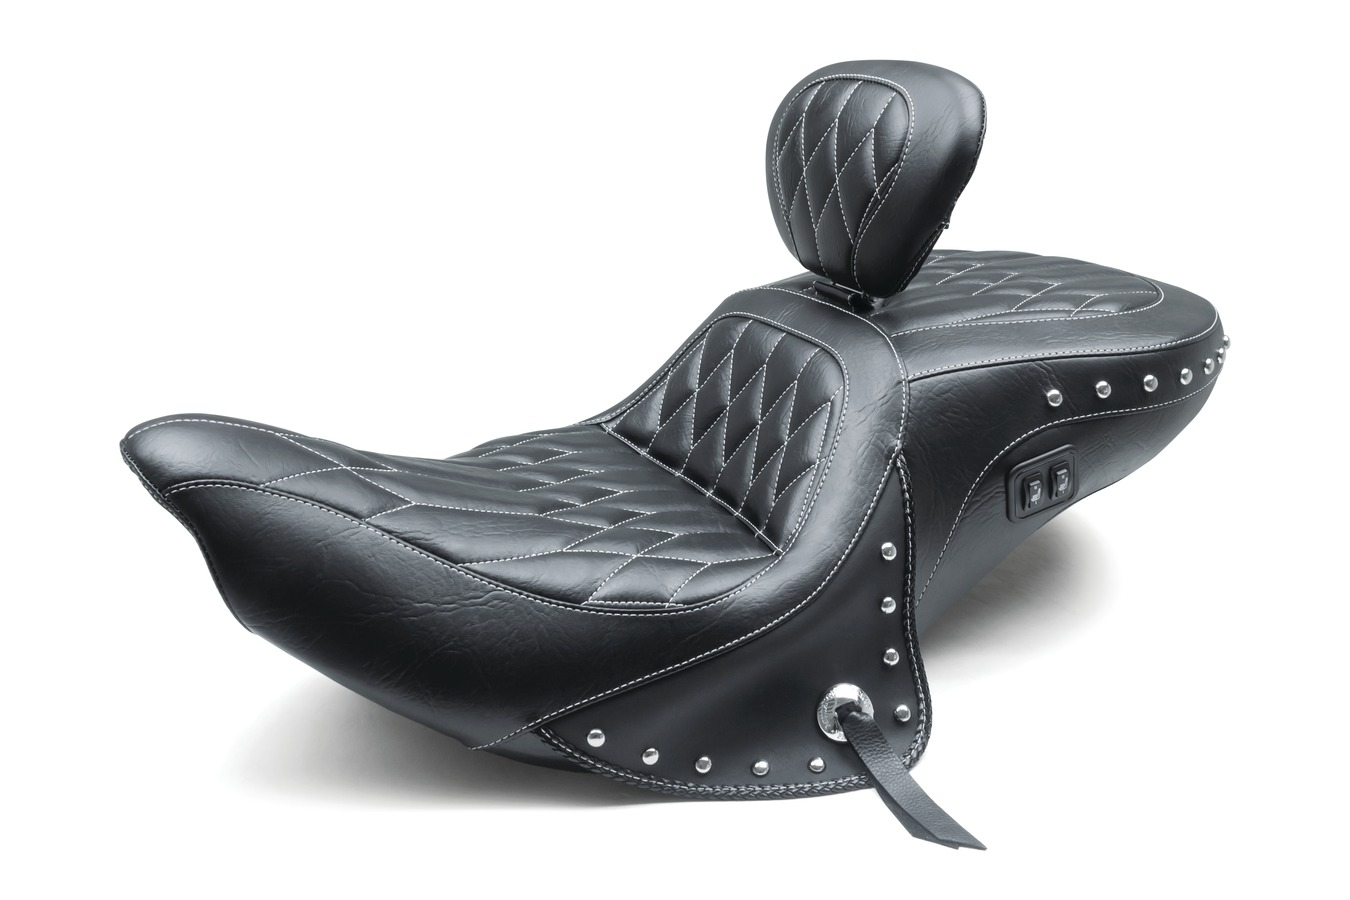 Standard Touring One-Piece Seat with Driver Backrest with Heat for Indian Chieftain, Chief Classic, Dark Horse, Roadmaster, Springfield & Vintage 2014-